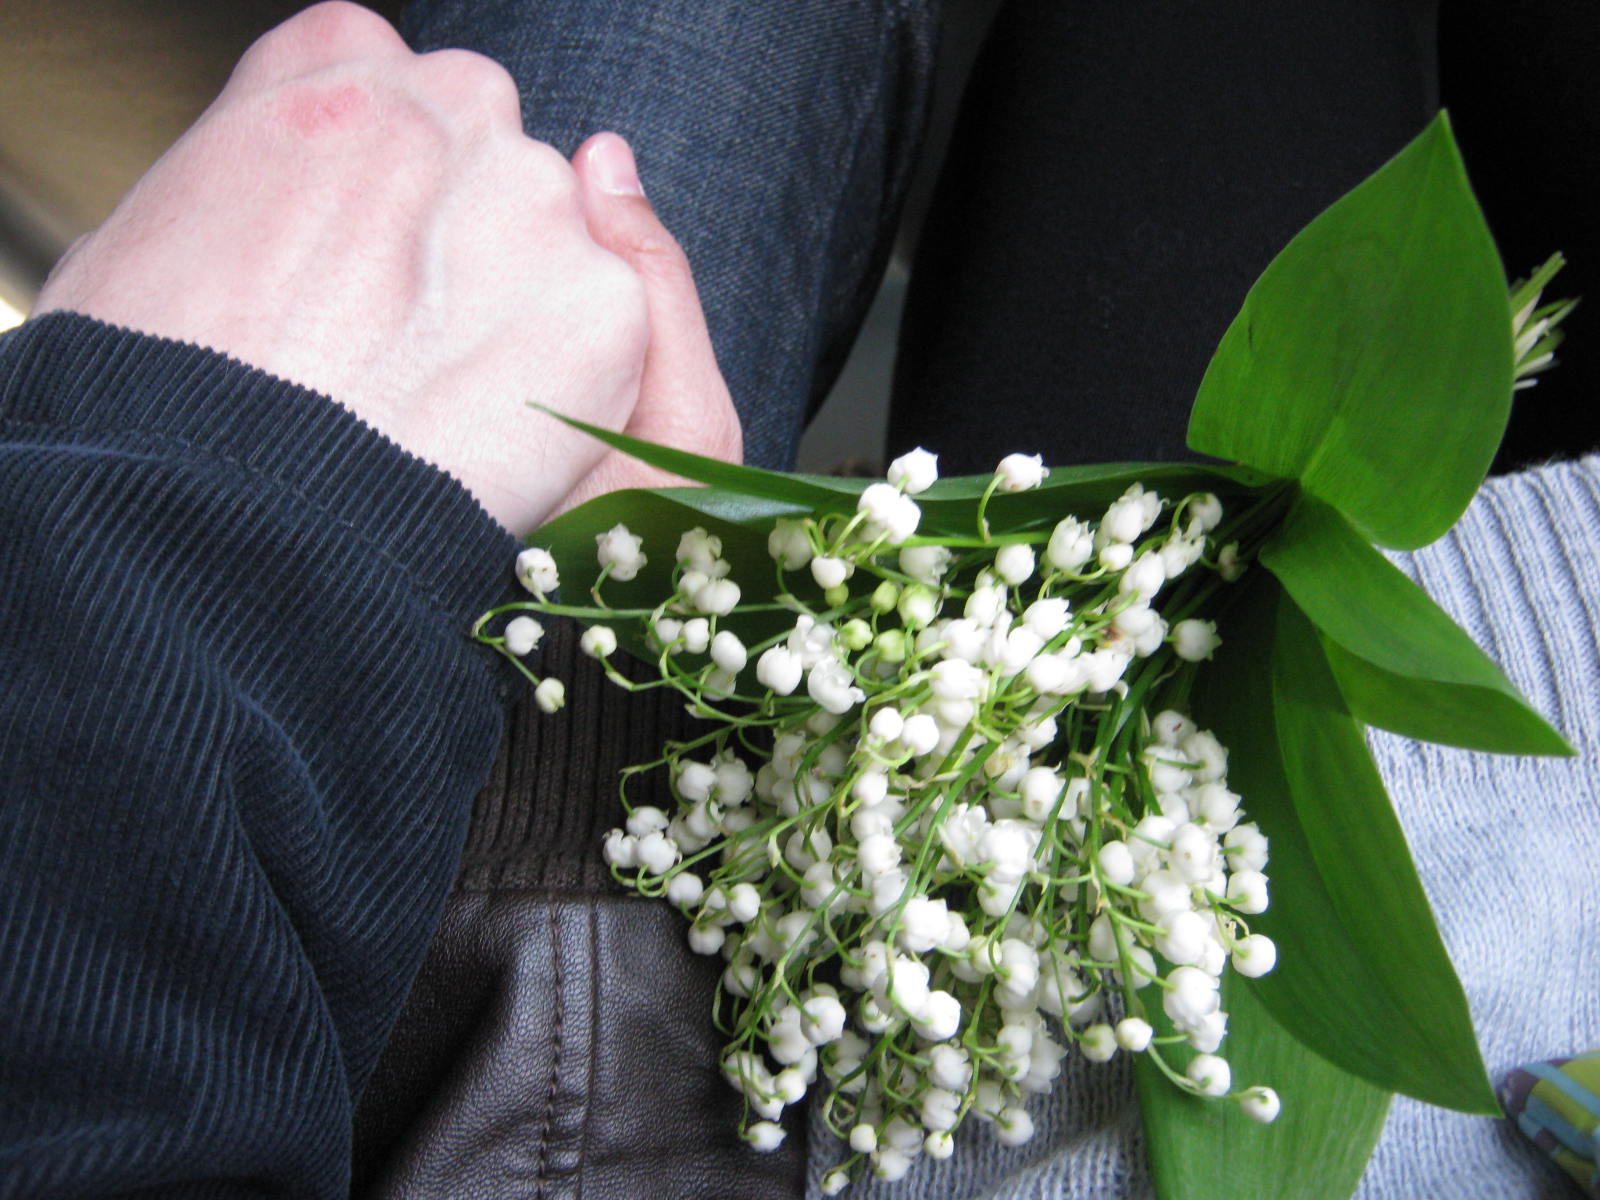 living in russia lily of the valley return of holding a bouquet or two of lily of the valley is a common sight on russian streets in may day before long it will disappear from the streets as soon as izmirmasajfo